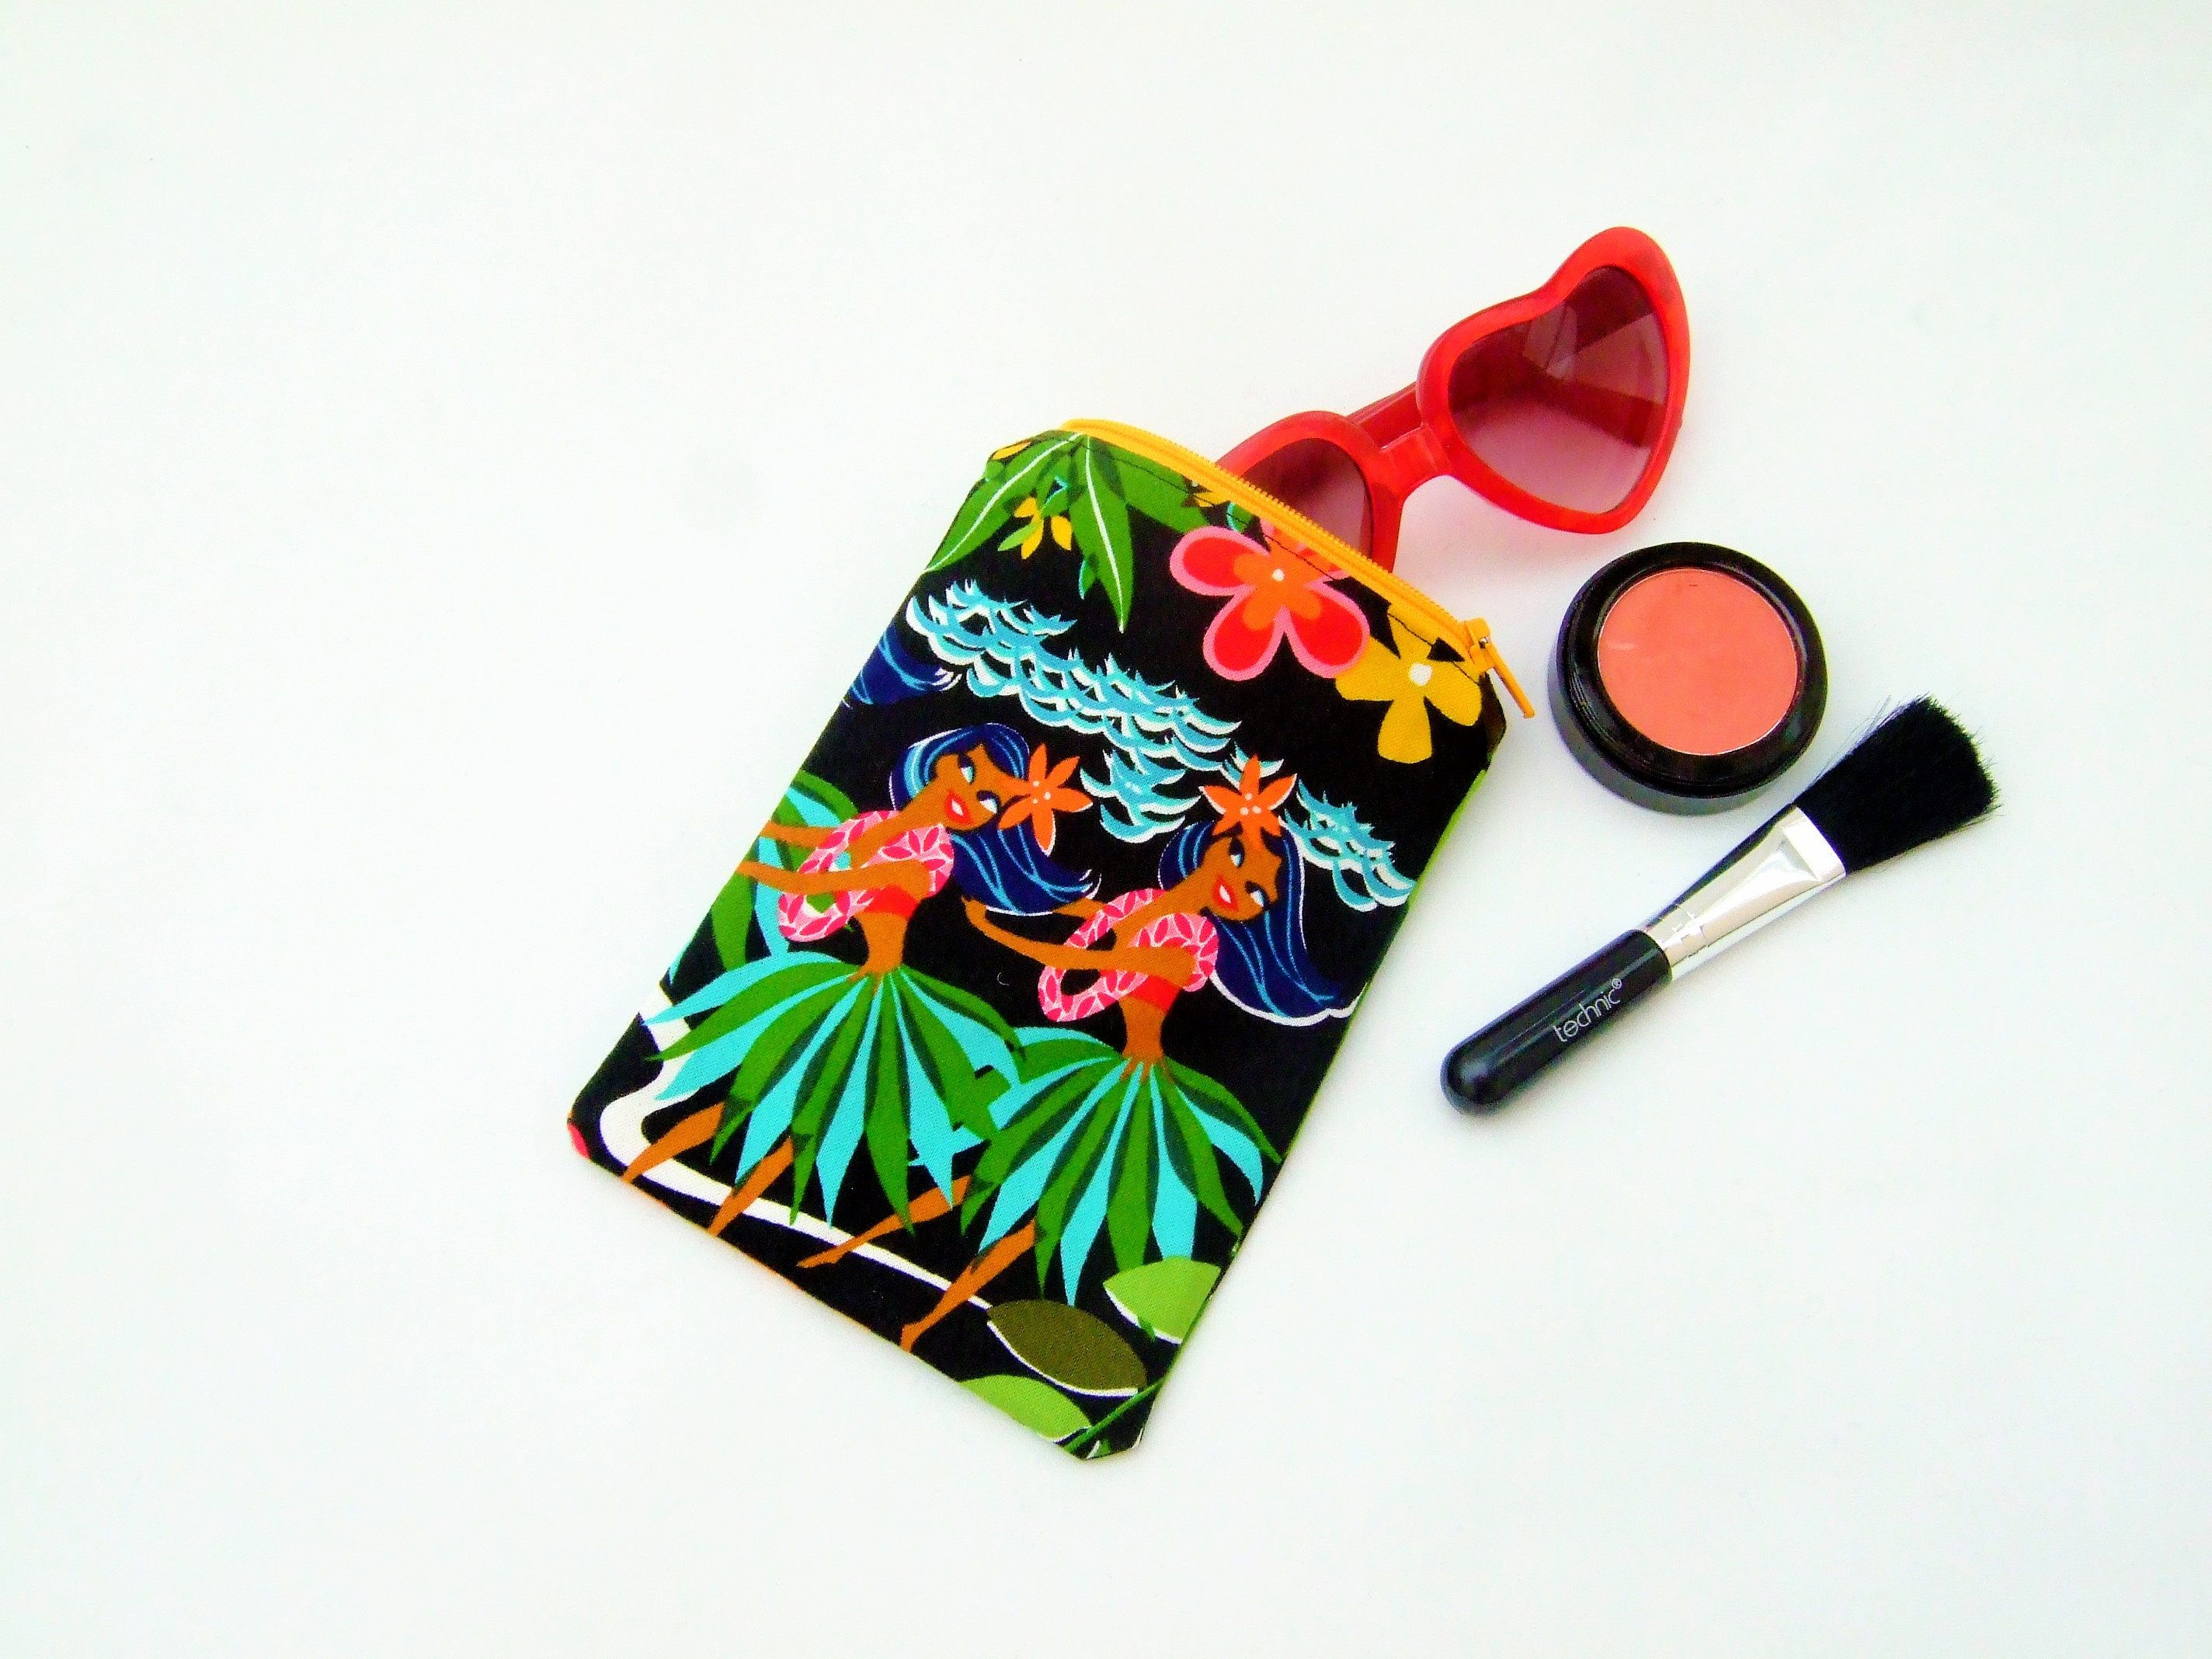 Retro sunglass case, kitsch tiki case, make up bag, tiki retro pouch, hawaiian fabric, cute cosmetic case, beach holiday bag, tikibar kitsch by Kitschosaurus on Etsy